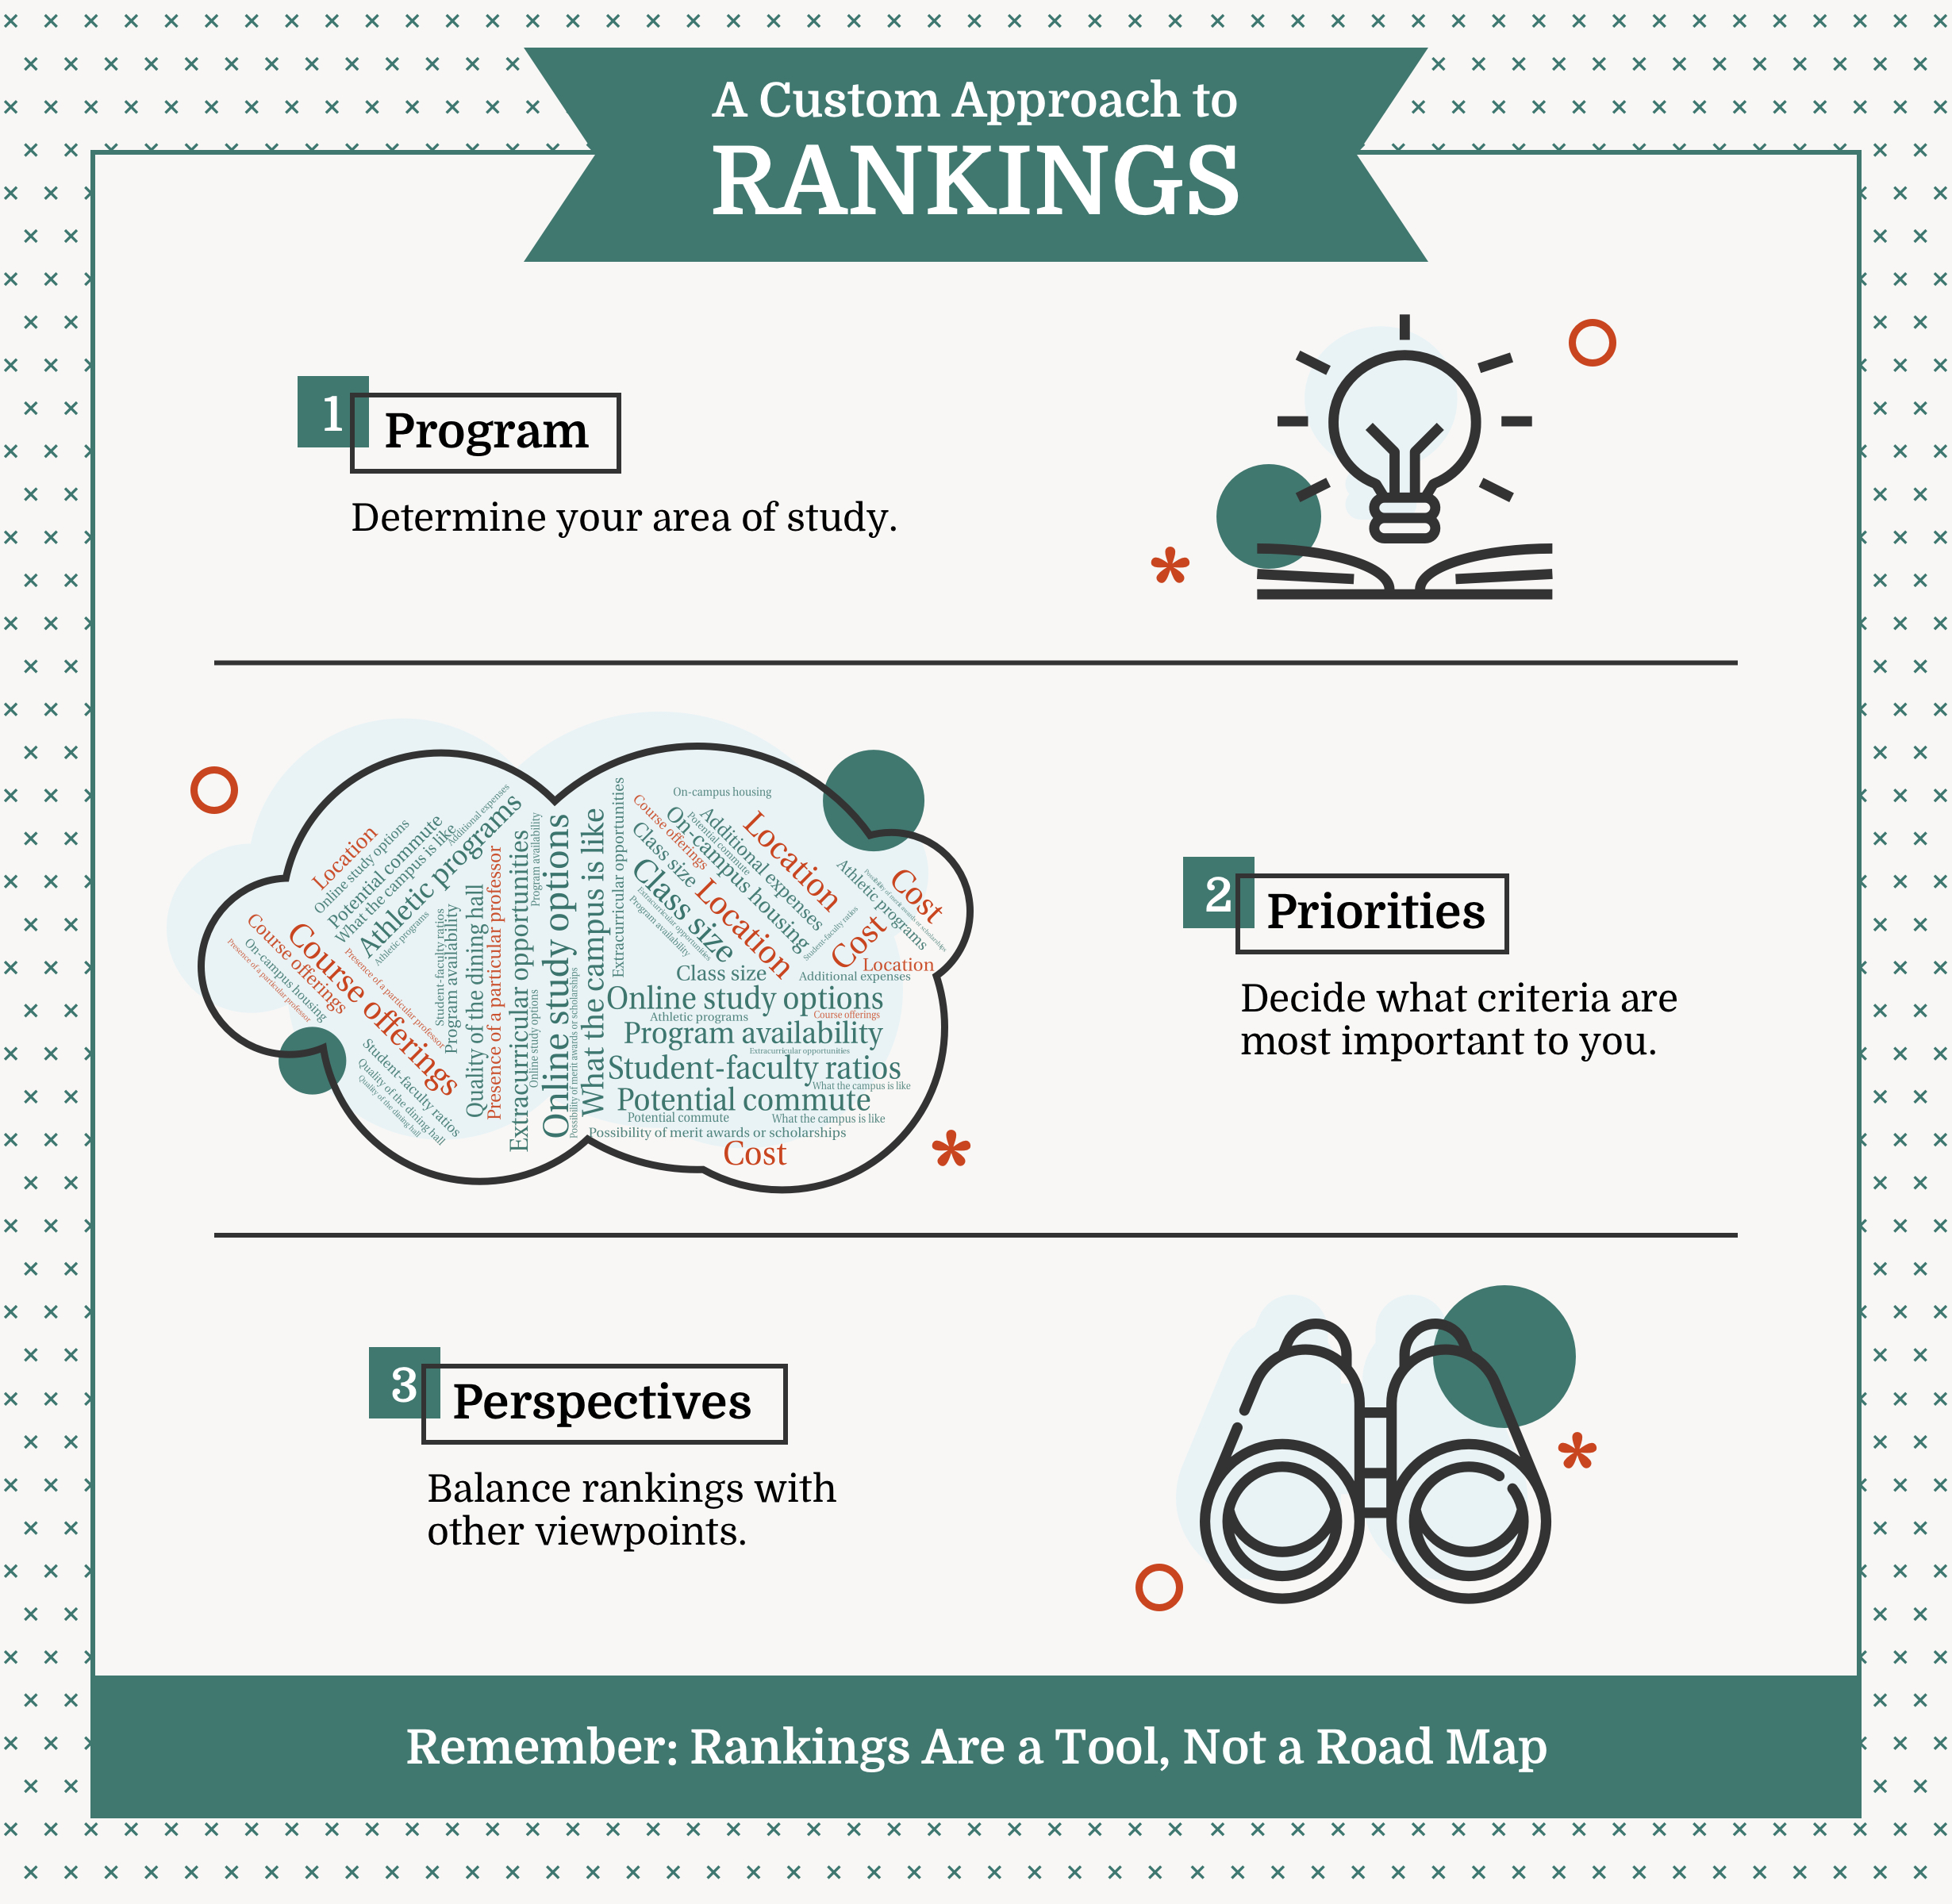 Infographic titled: 'A Custom Approach to Rankings'. 1. Program: Determine your area of study. 2. Priorities: Decide what criteria are most important to you. 3. Perspectives: Balance rankings with other viewpoints. Remember, rankings are a tool, not a roadmap.